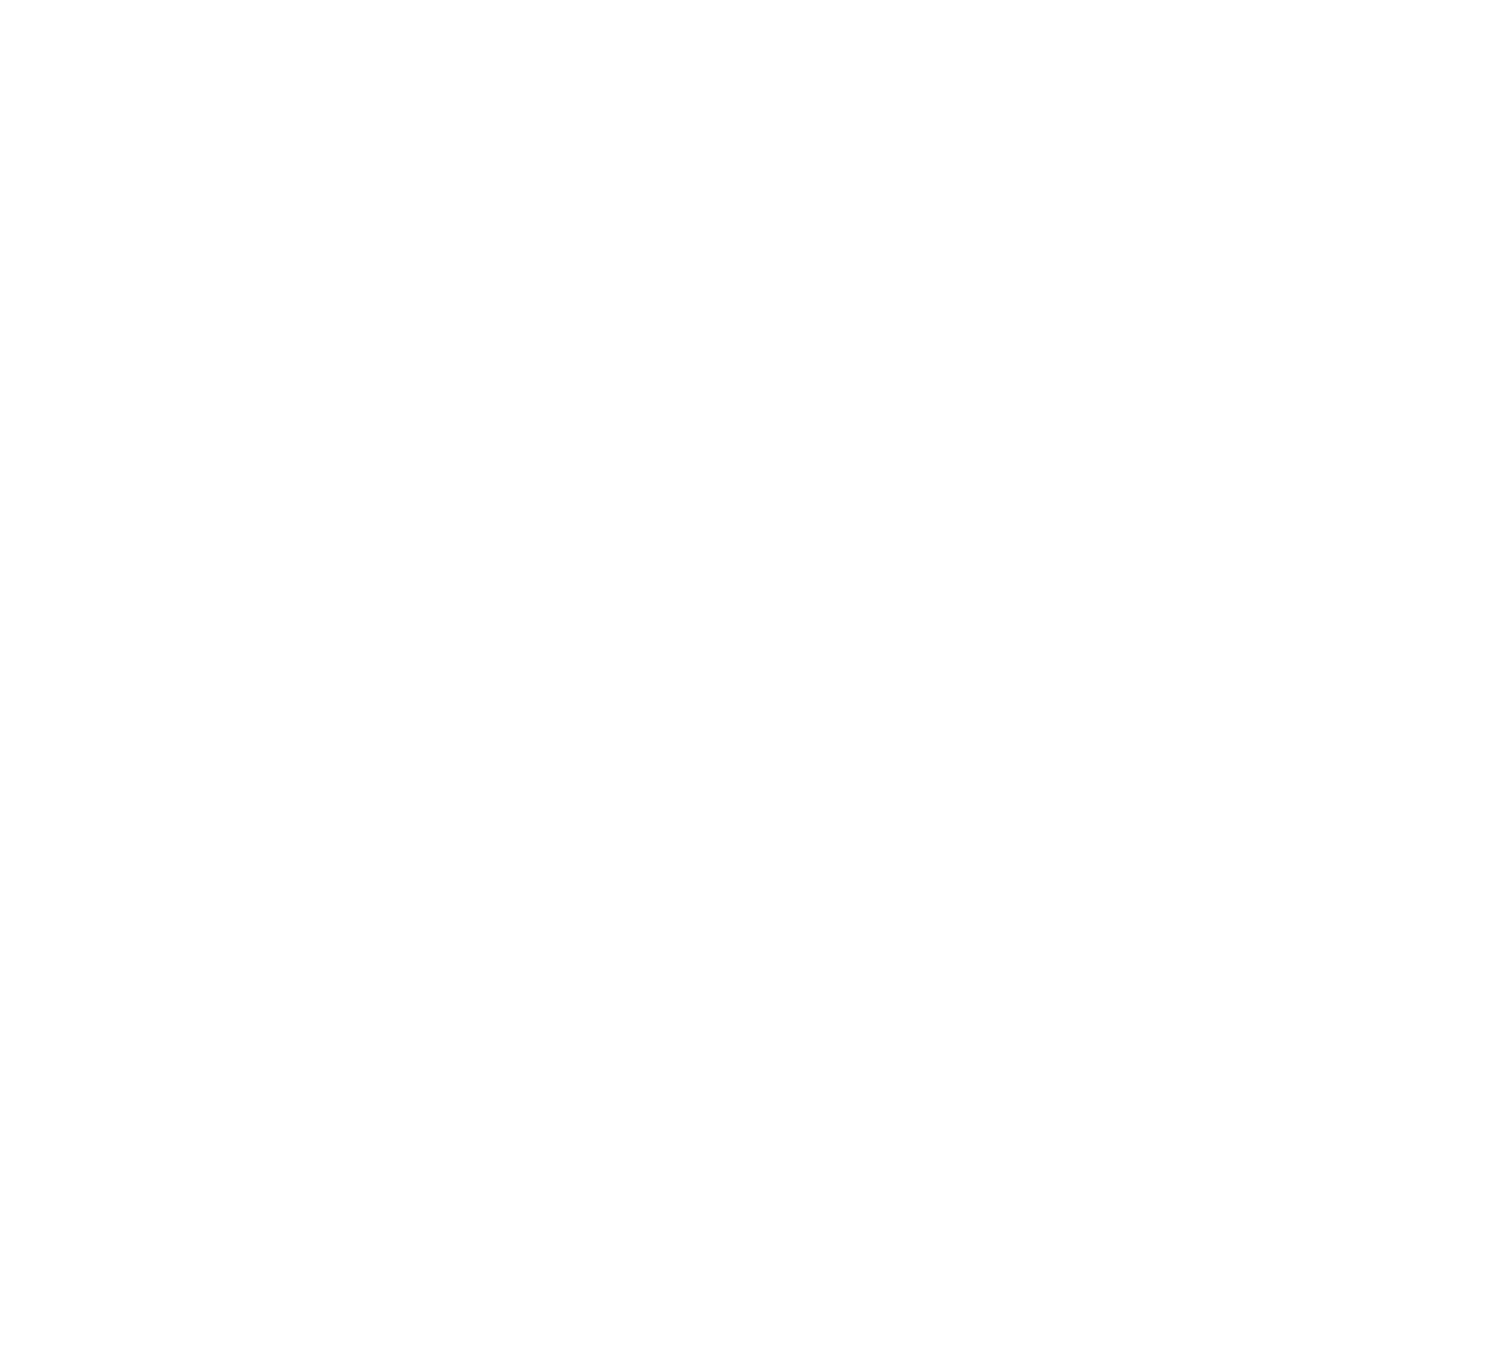 Apeiro Group, LLC